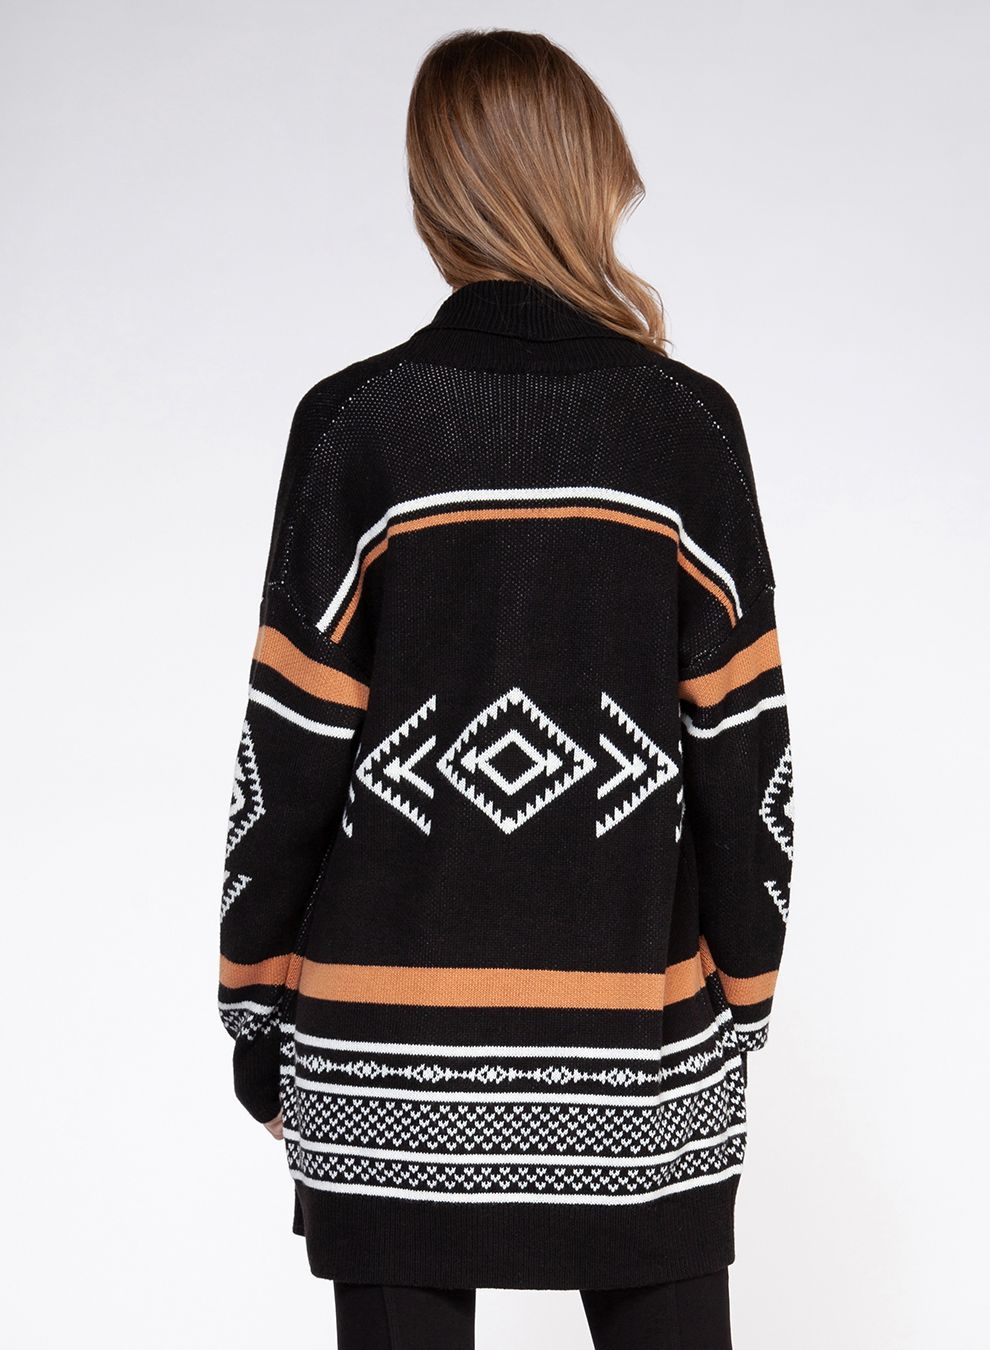 Tribal sweater cardigan